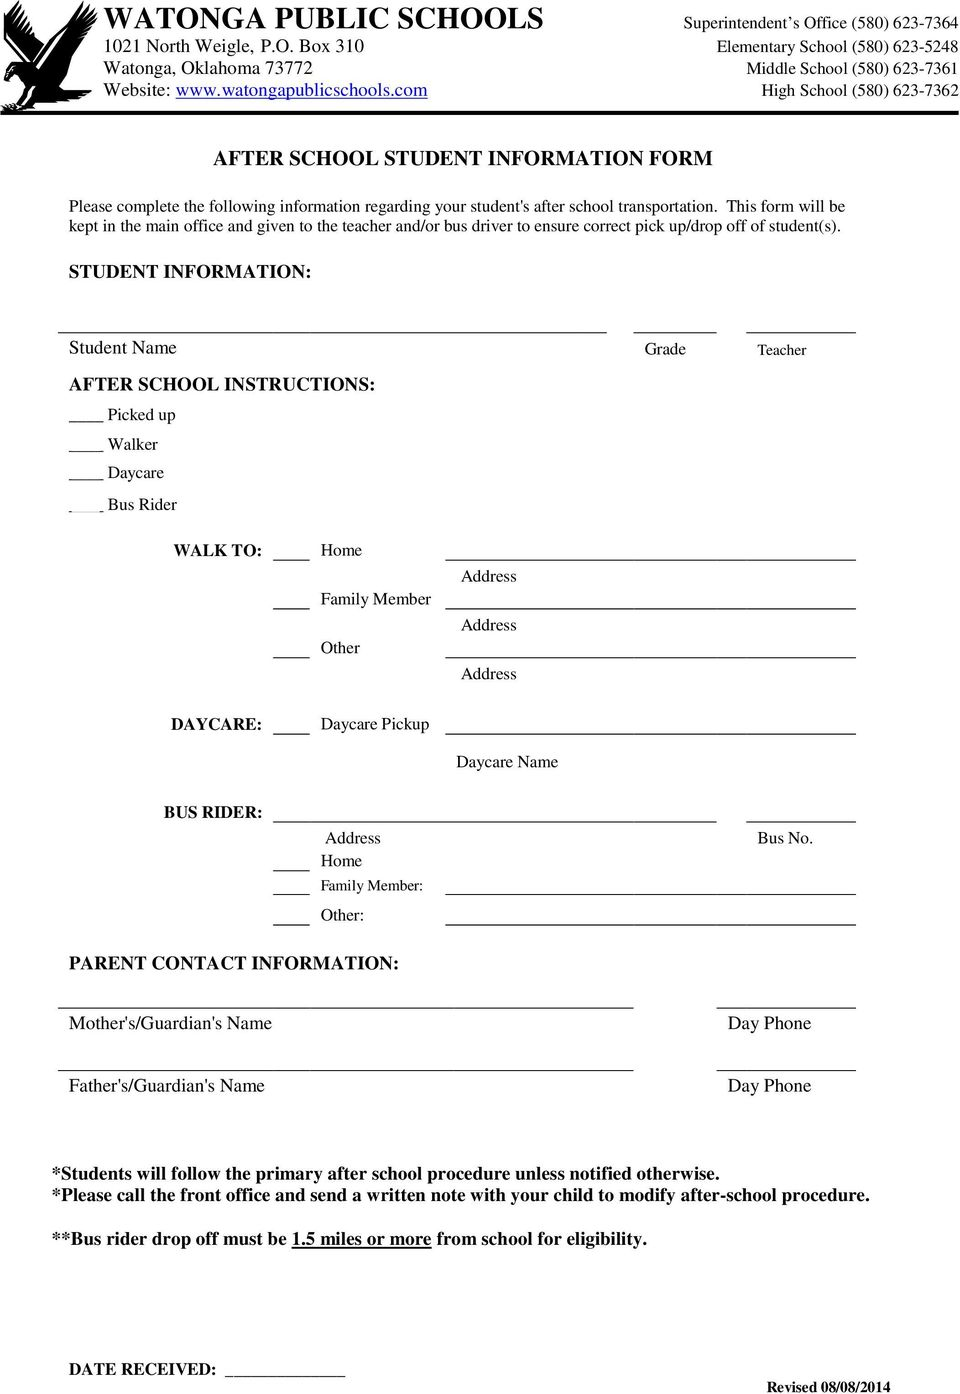 This form will be kept in the main office and given to the teacher and/or bus driver to ensure correct pick up/drop off of student(s).